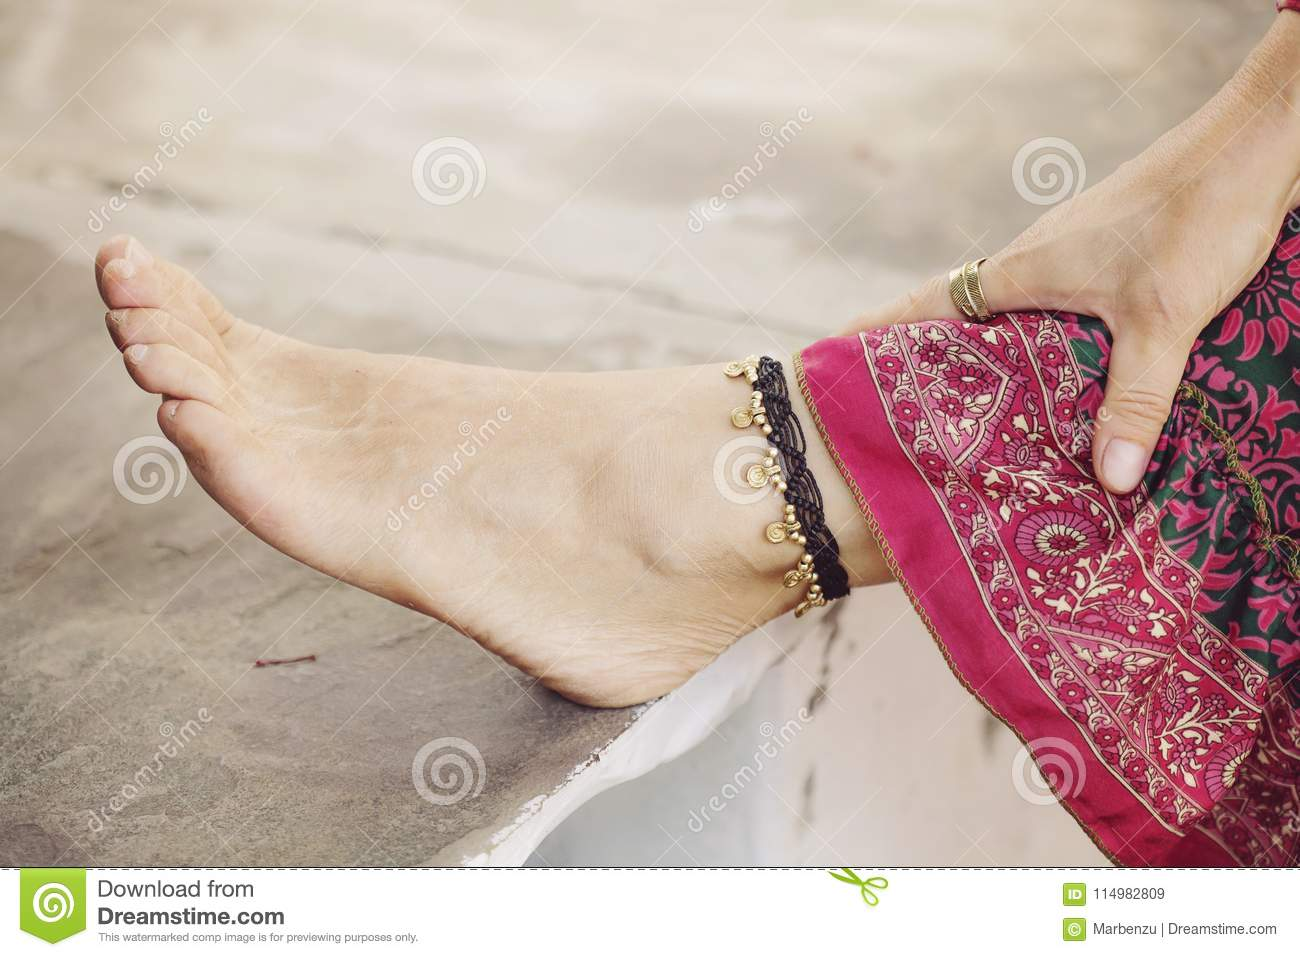 female big anklet woman one red her feet toenails and foot stock toe of thread with photo on standing young